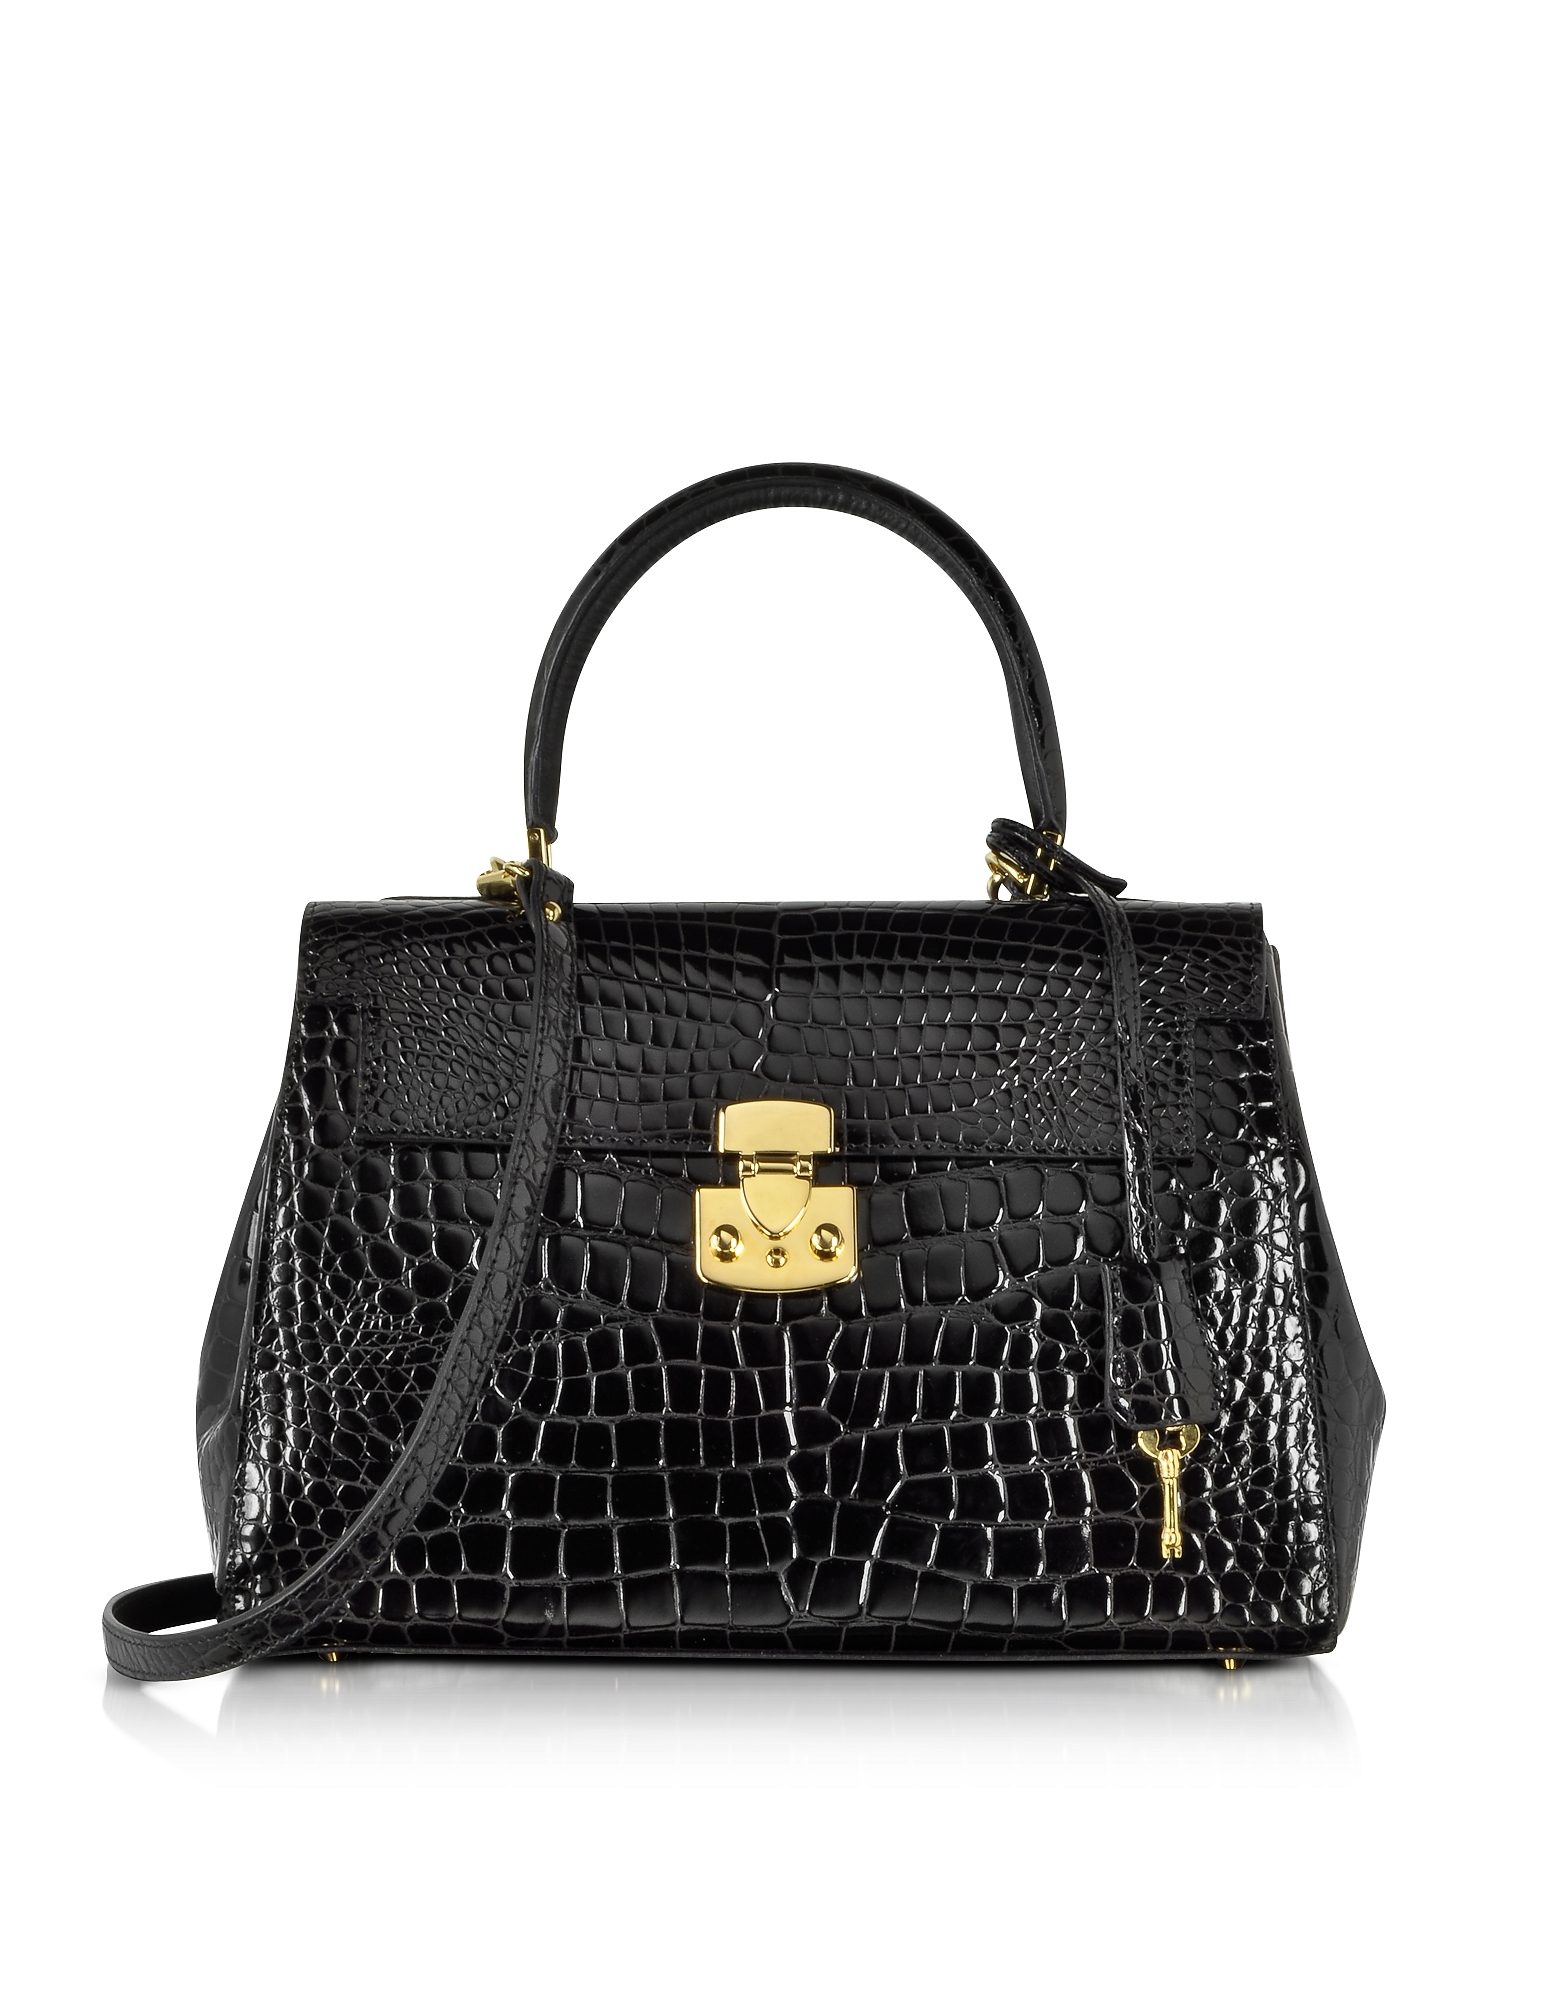 Fontanelli Designer Handbags,  Shiny Black croco-style Leather Handbag